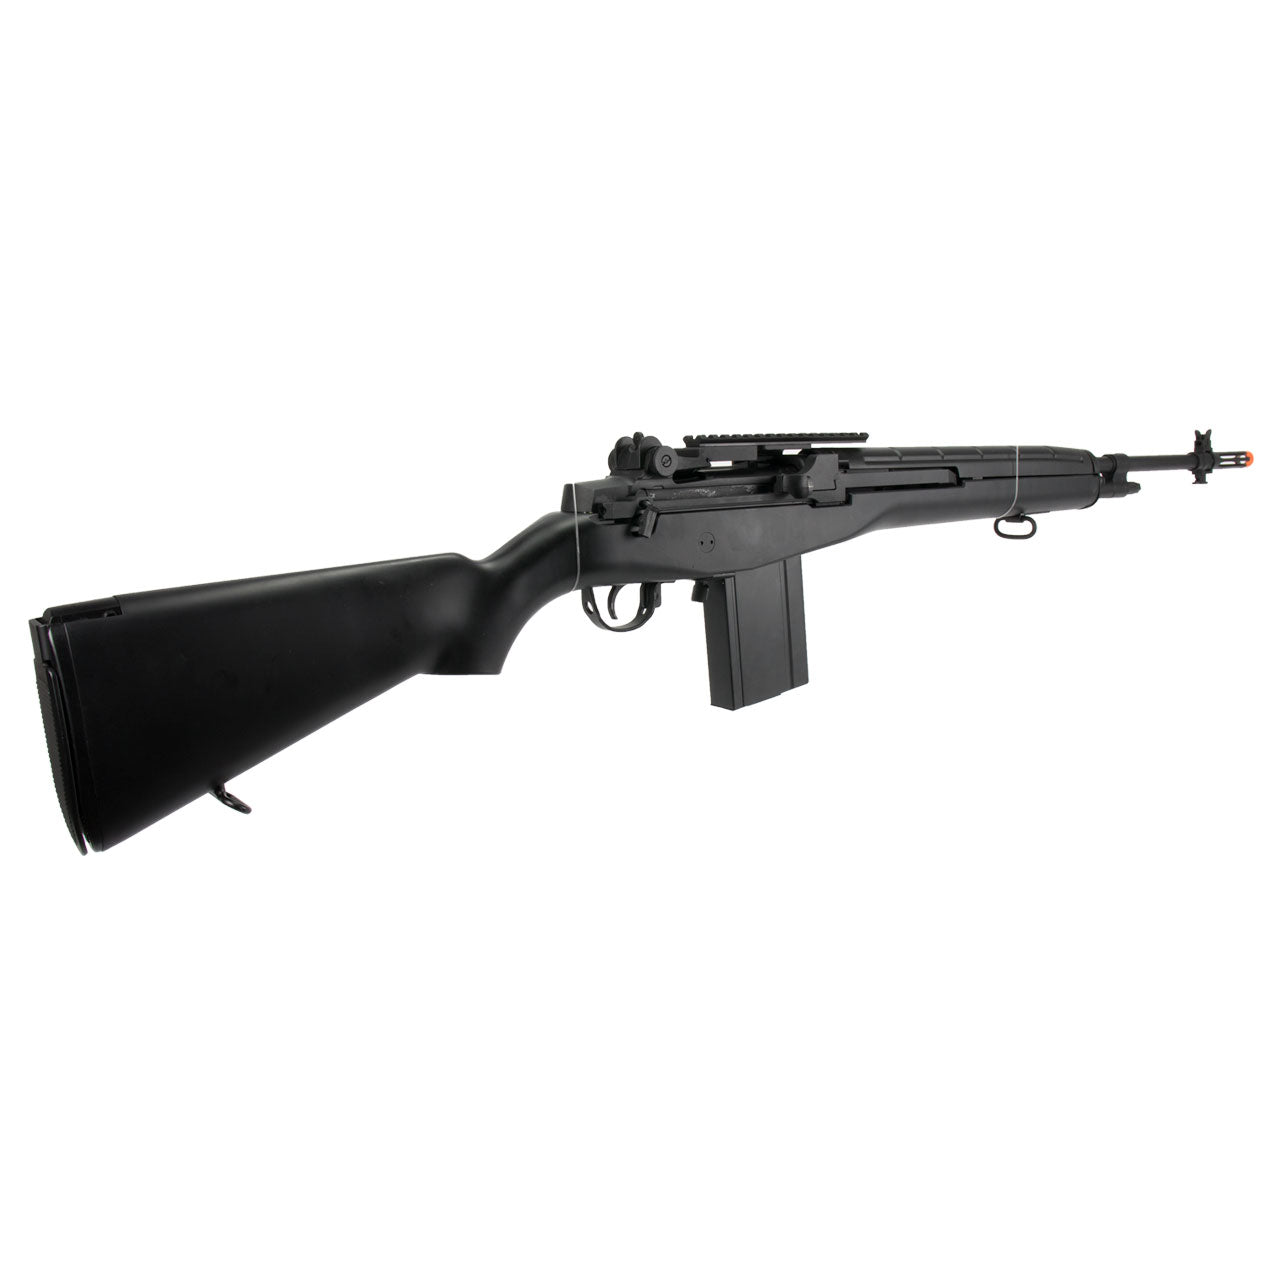 AGM MP008 M14 Full Size Airsoft AEG Sniper Rifle w/ Battery & Charger